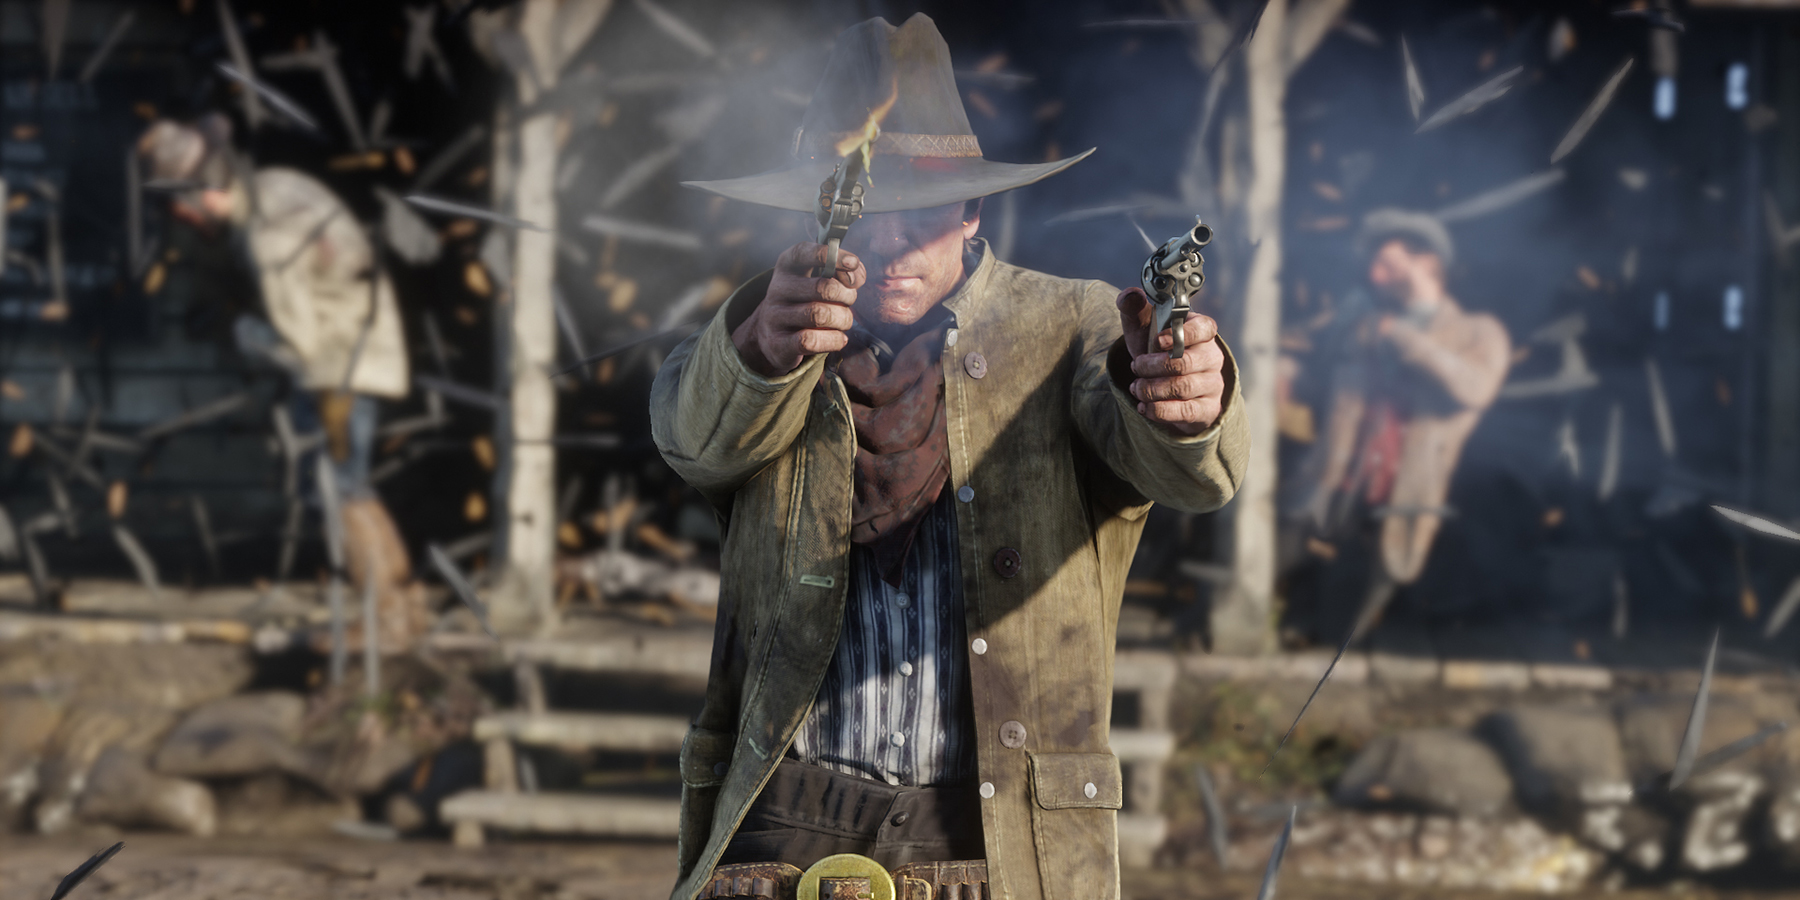 Red dead redemption 2 release date in Melbourne